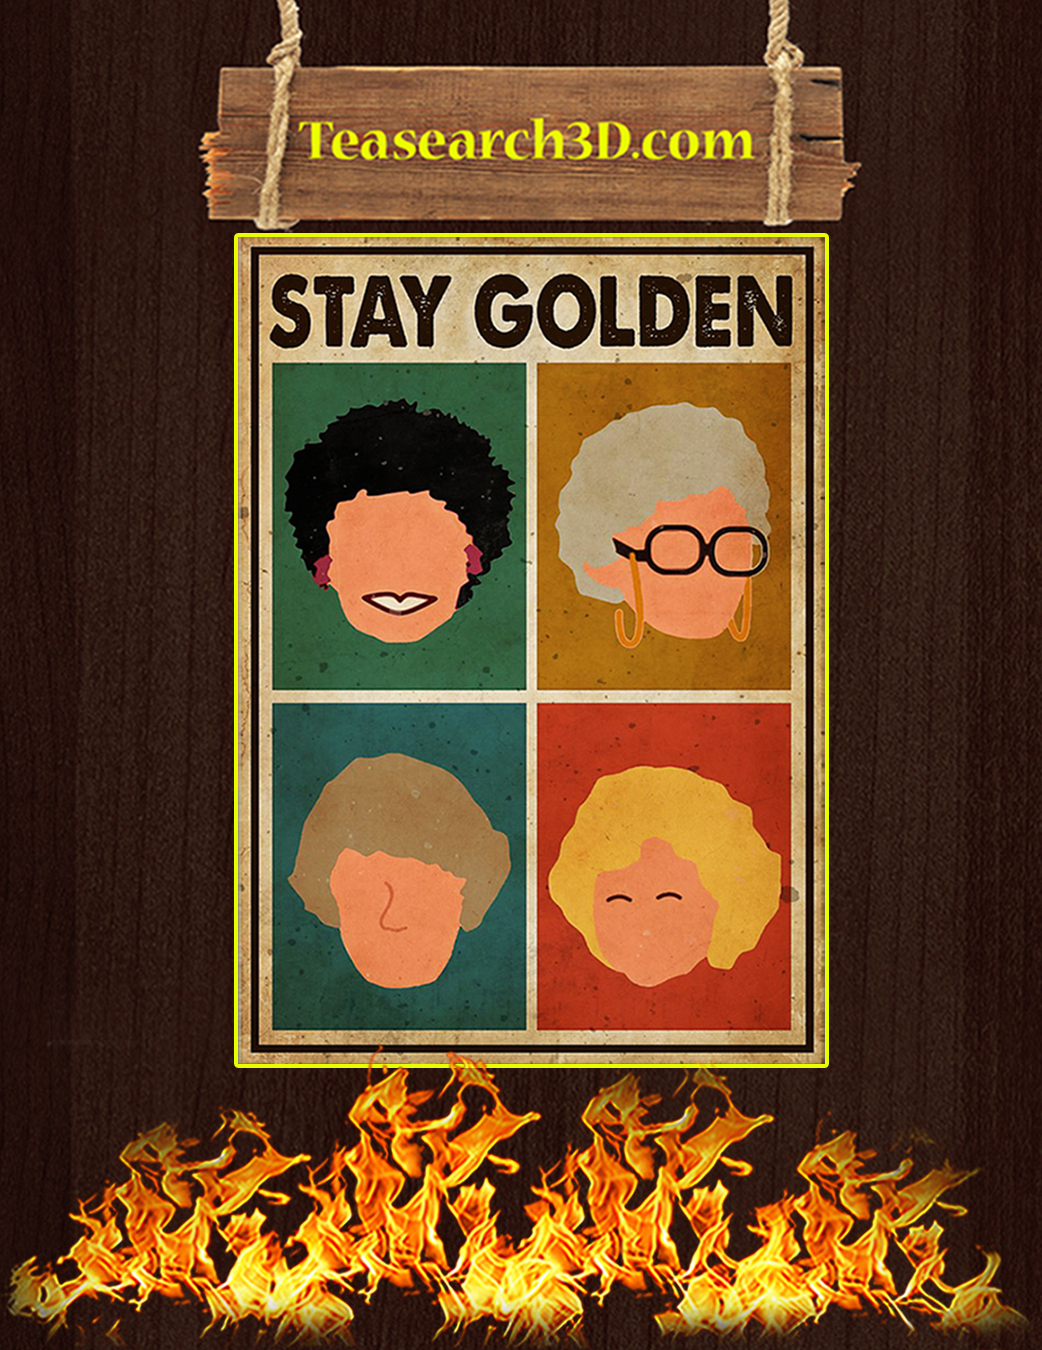 Stay golden poster A1